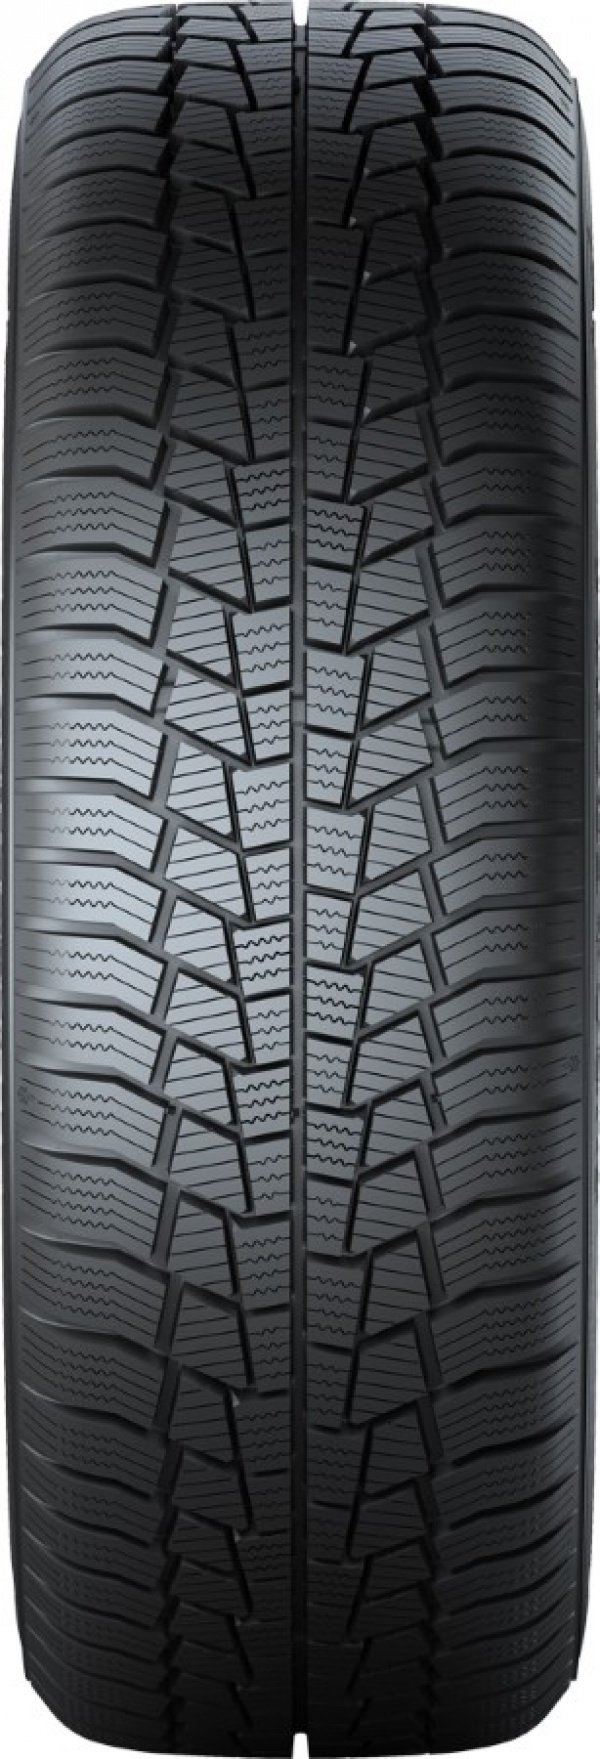 Gislaved Euro Frost 6 155/65 R14 75T  не шип